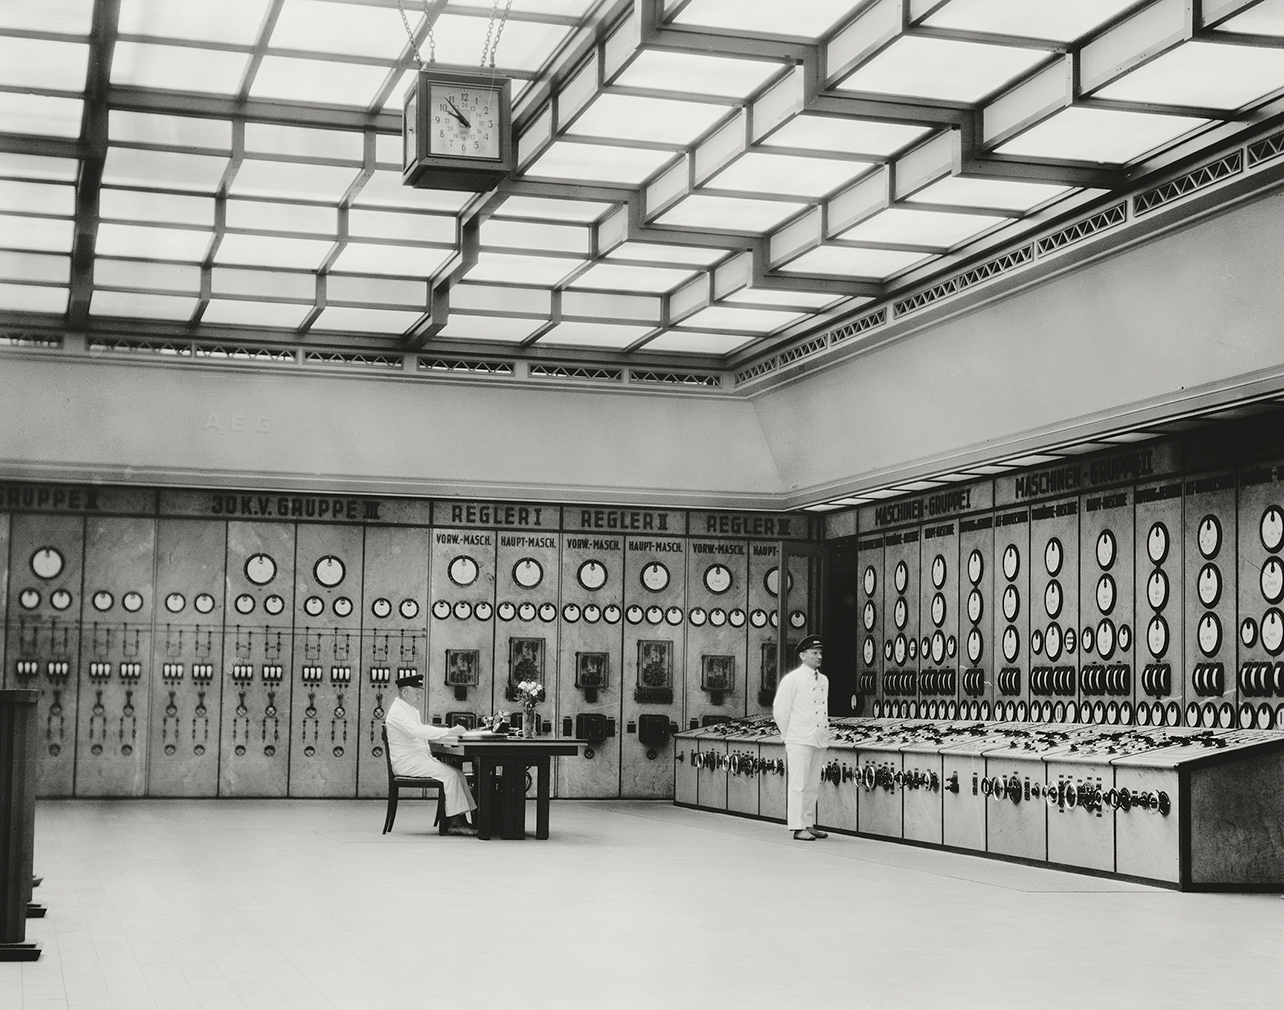 EO Hoppé, 'Control room, Klingenberg powerstation, Berlin', Germany, 1928. © 2017 Curatorial Assistance, Inc., EO Hoppé Estate Collection